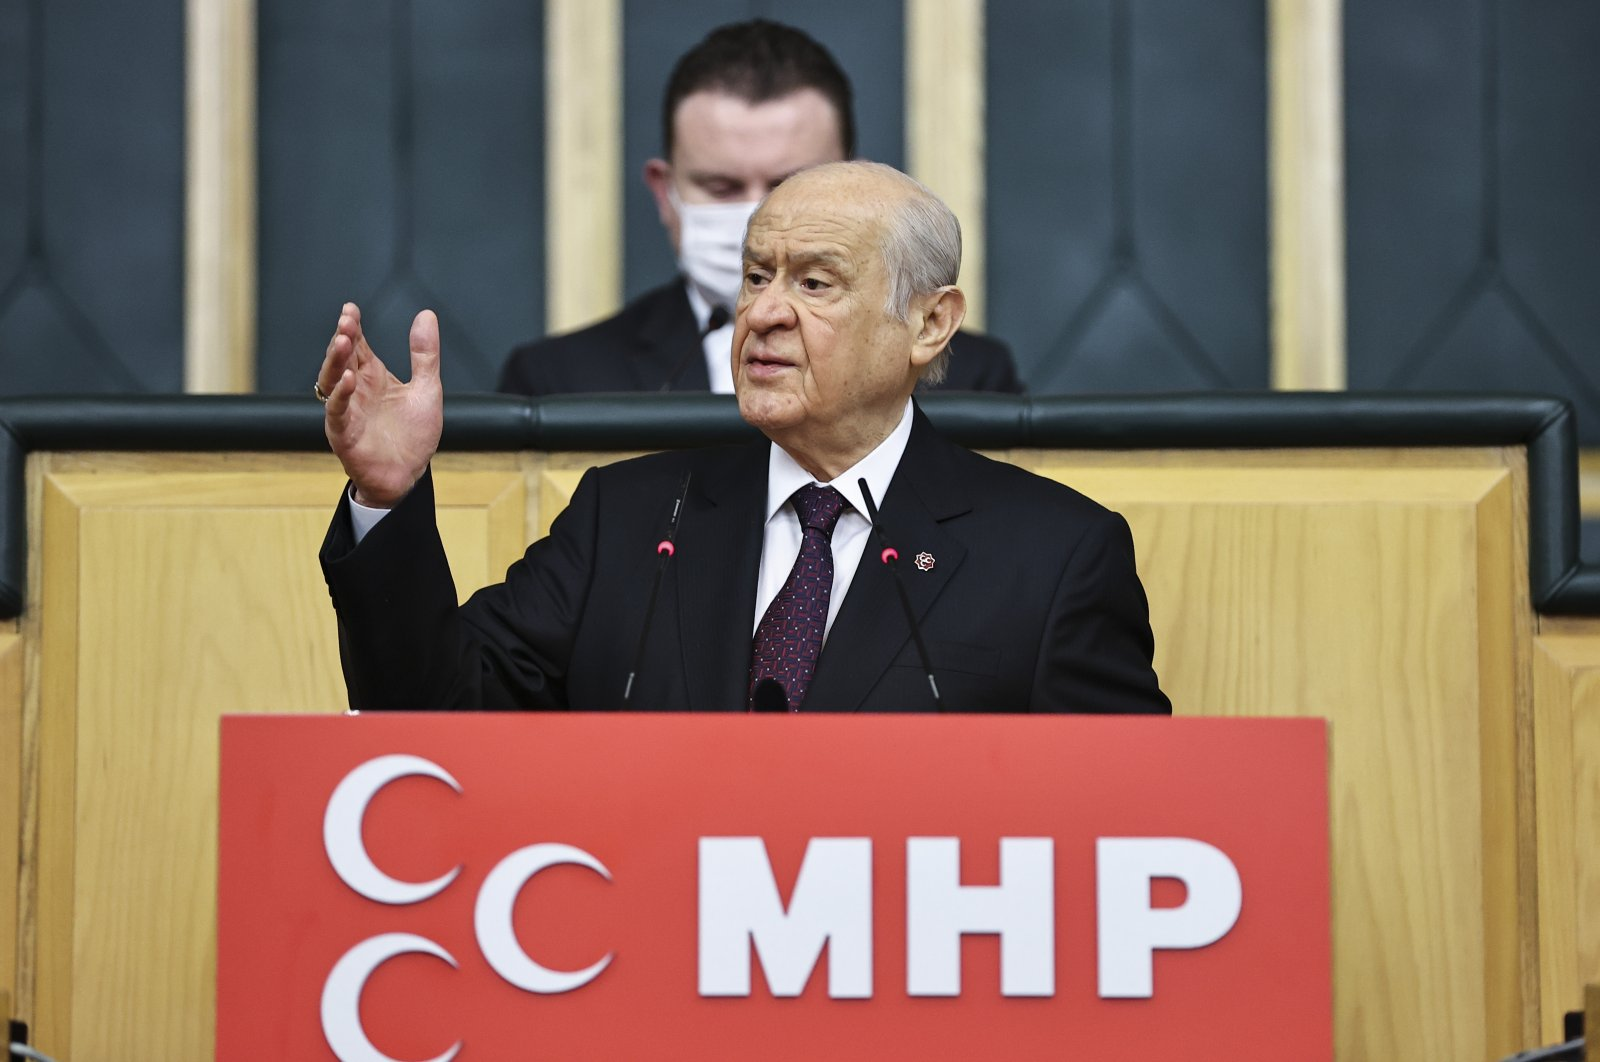 Nationalist Movement Party (MHP) leader Devlet Bahçeli speaks during a party meeting in Ankara, Turkey, March 30, 2021. (AA Photo)